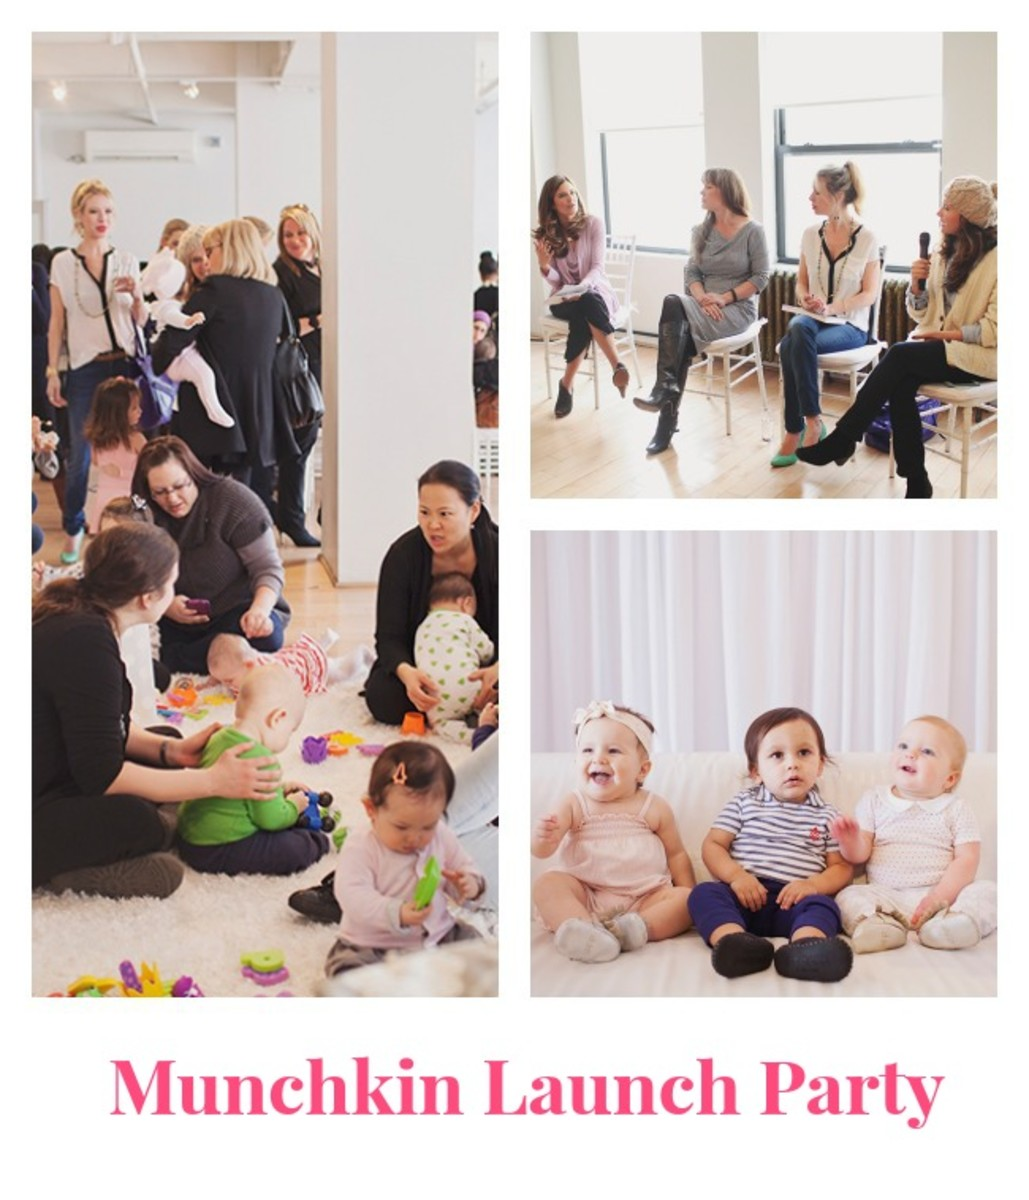 Munchkin Launch Party.jpg